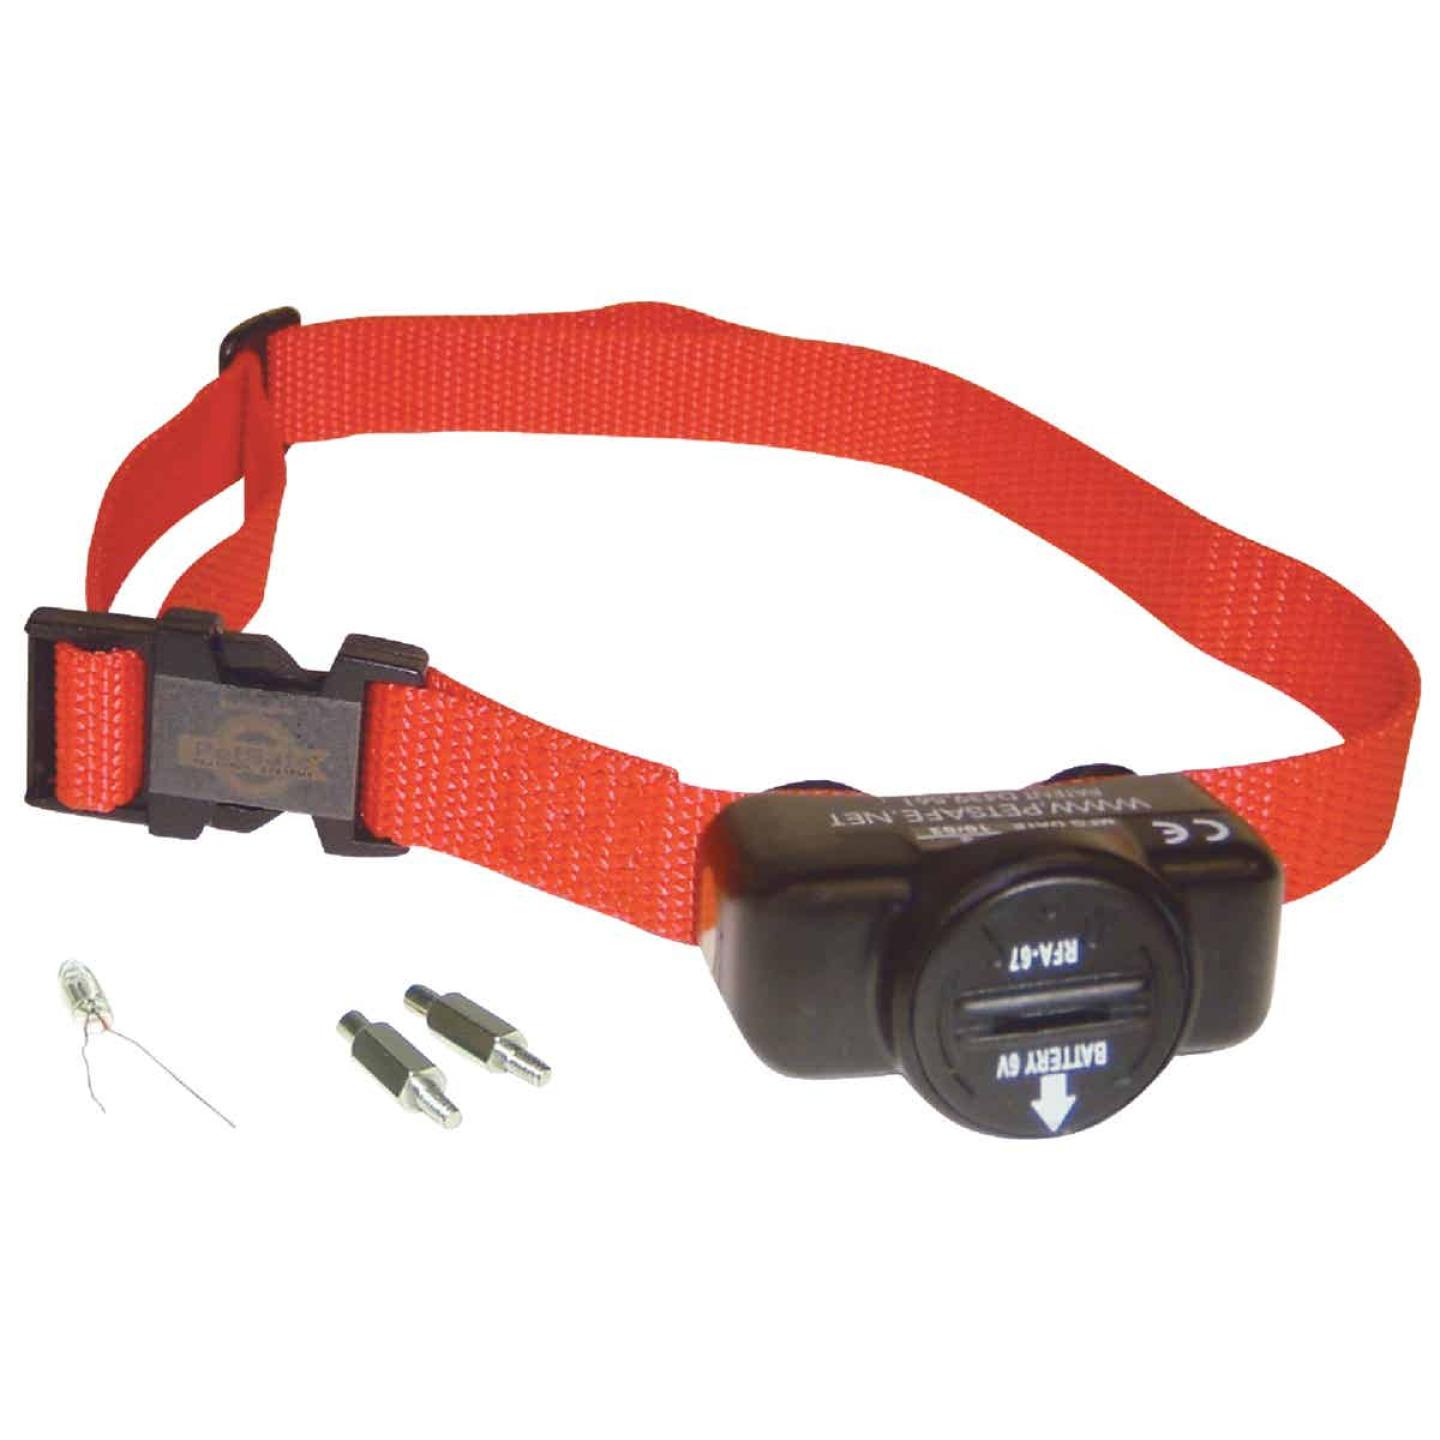 PetSafe Ultralight Fence Receiver Collar For Dogs Over 8 Lb. Image 1